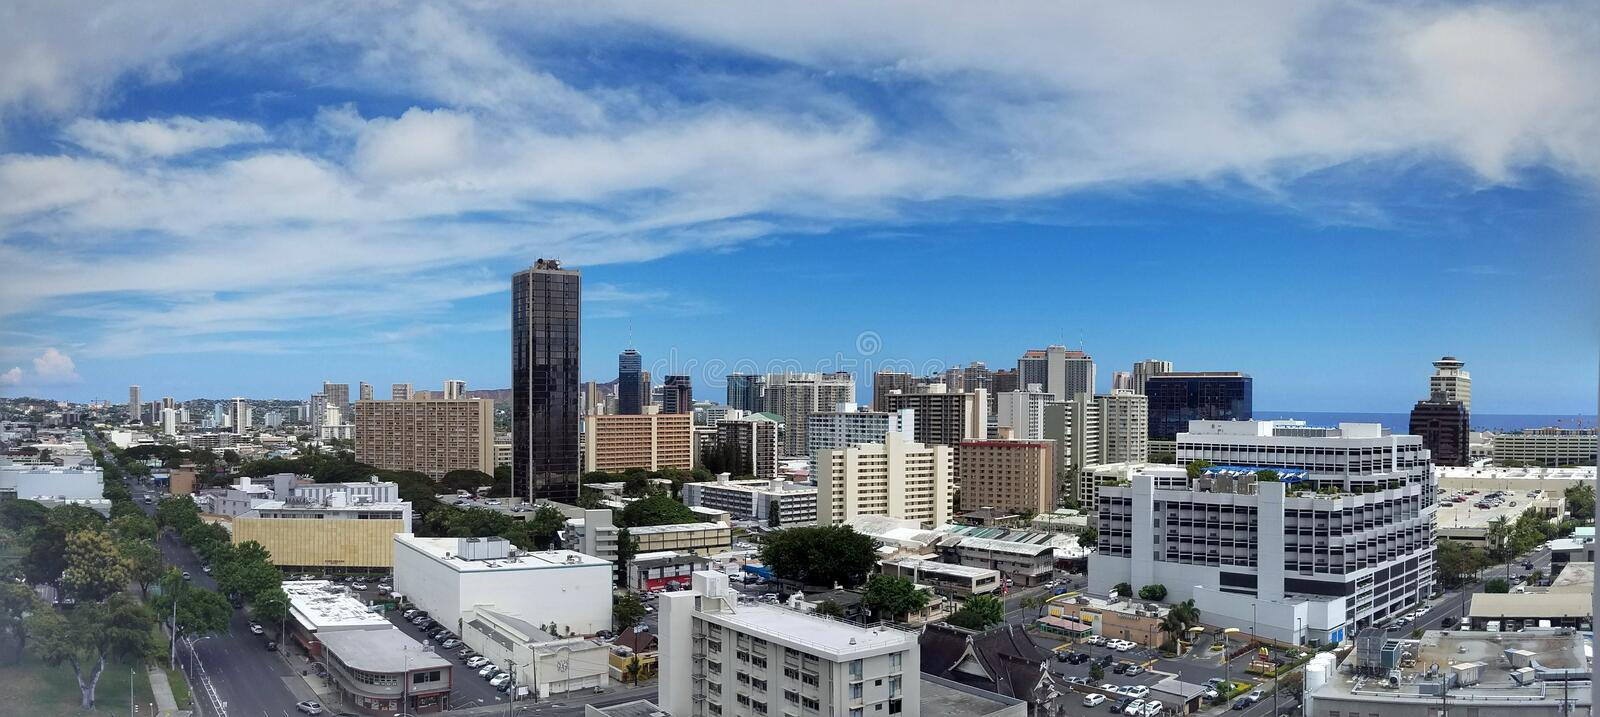 Aerial of Honolulu, Diamond Head, Waikiki, Buildings, parks, hotels and Condos royalty free stock photography